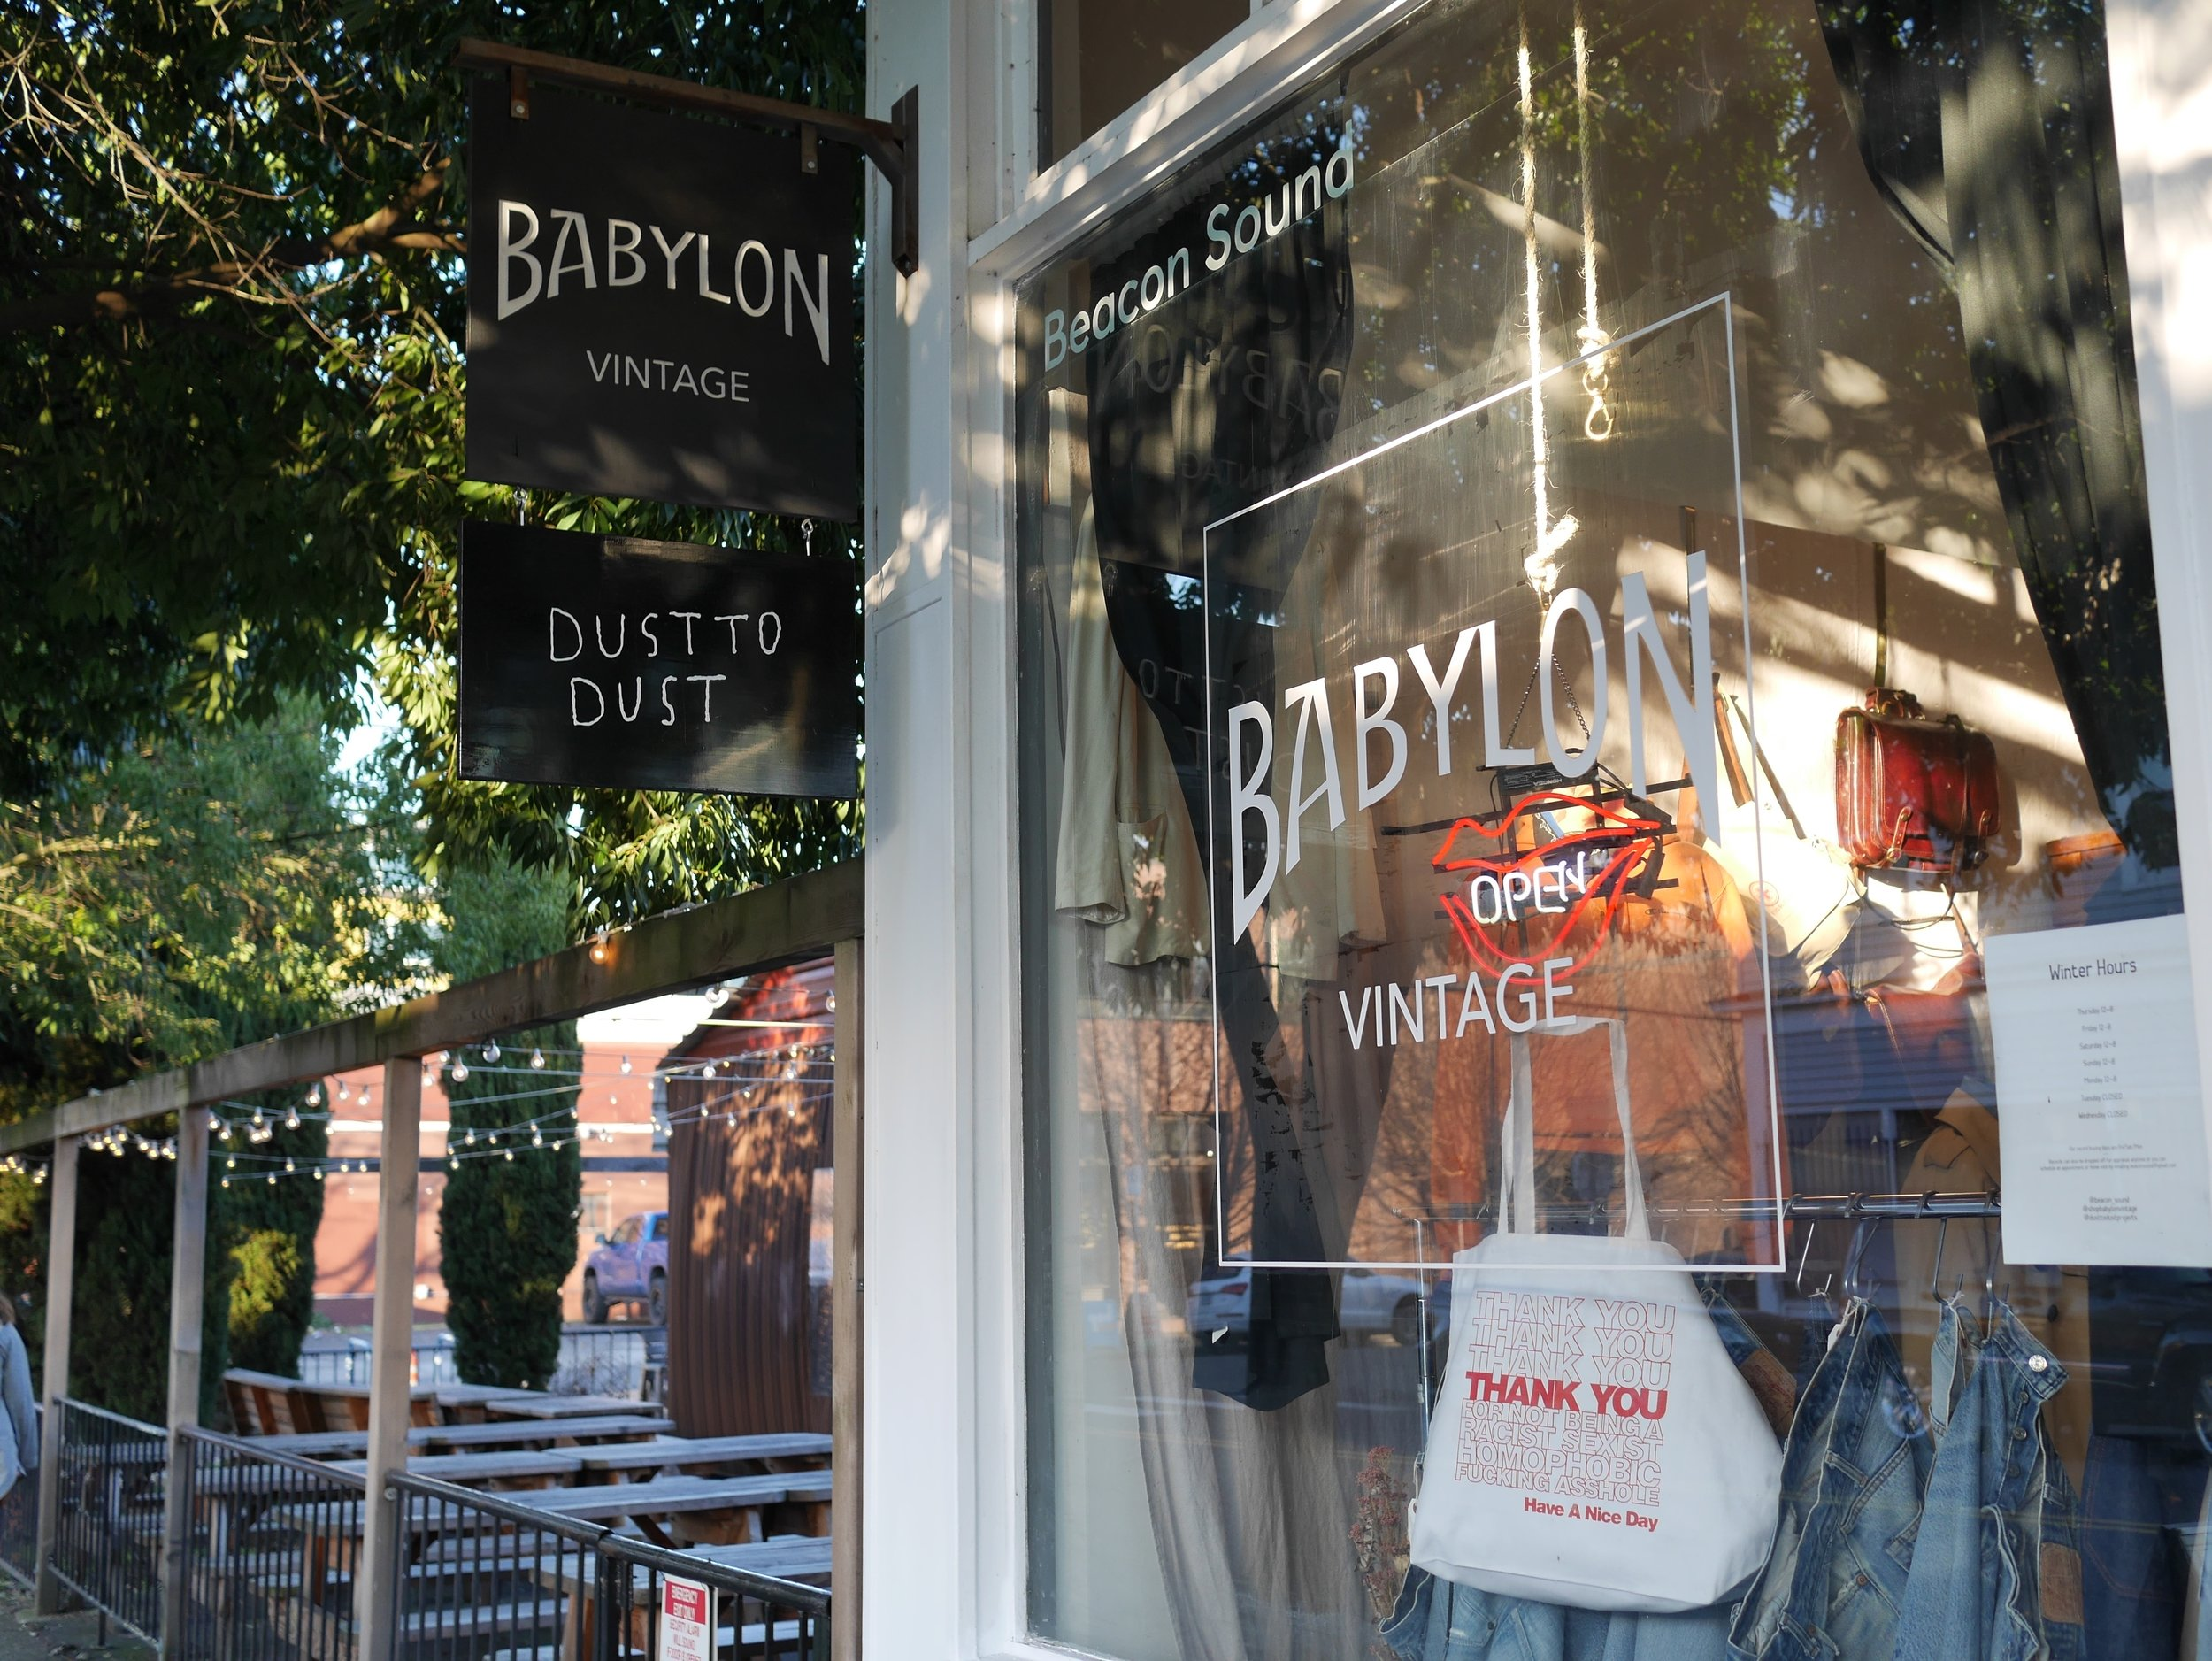 3636 N Mississippi Ave, Portland, Oregon  (The home of Dust to Dust, Babylon Vintage, Beacon Sound, and Indent Magazine)